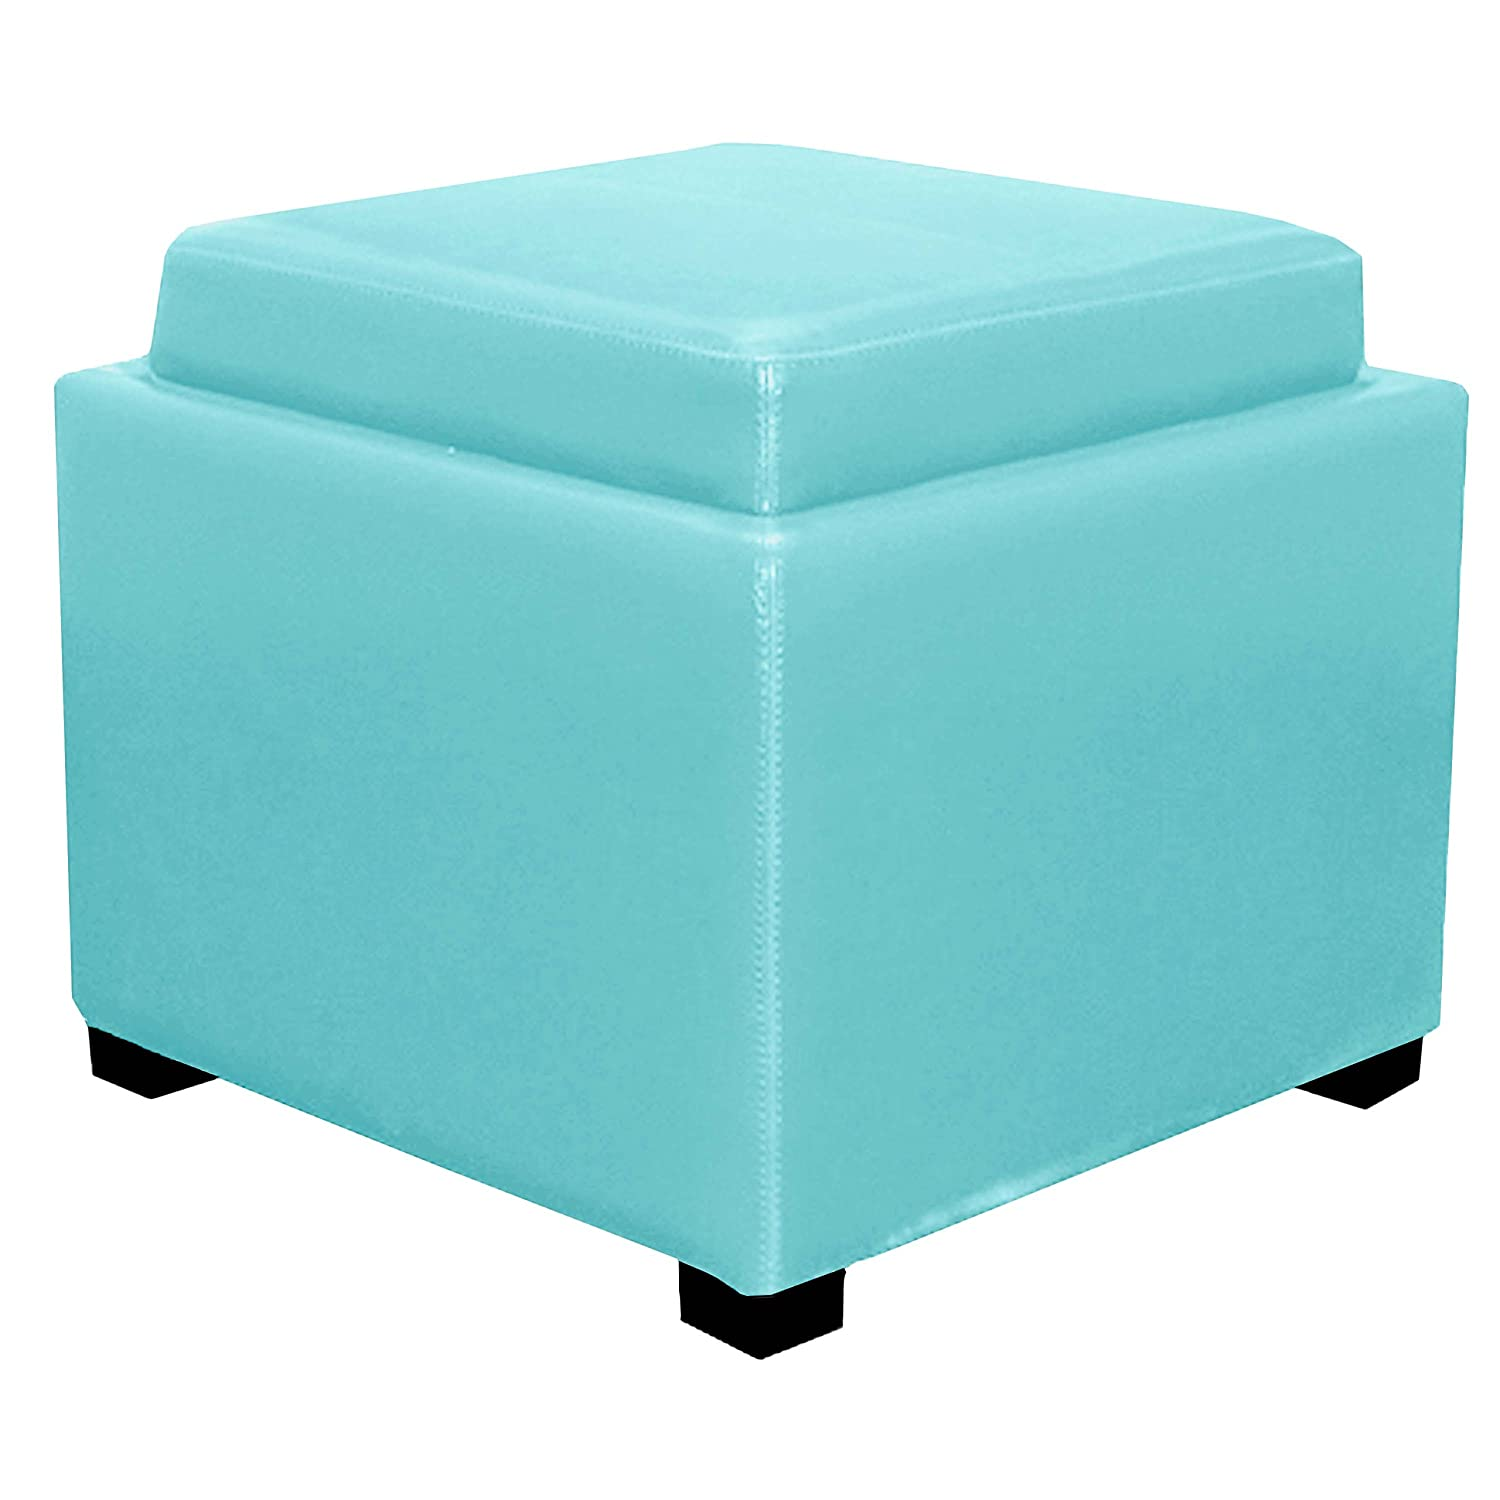 Miraculous New Pacific Direct 113042 3632 Cameron Square Leather Storage Ottoman Furniture Blue Andrewgaddart Wooden Chair Designs For Living Room Andrewgaddartcom